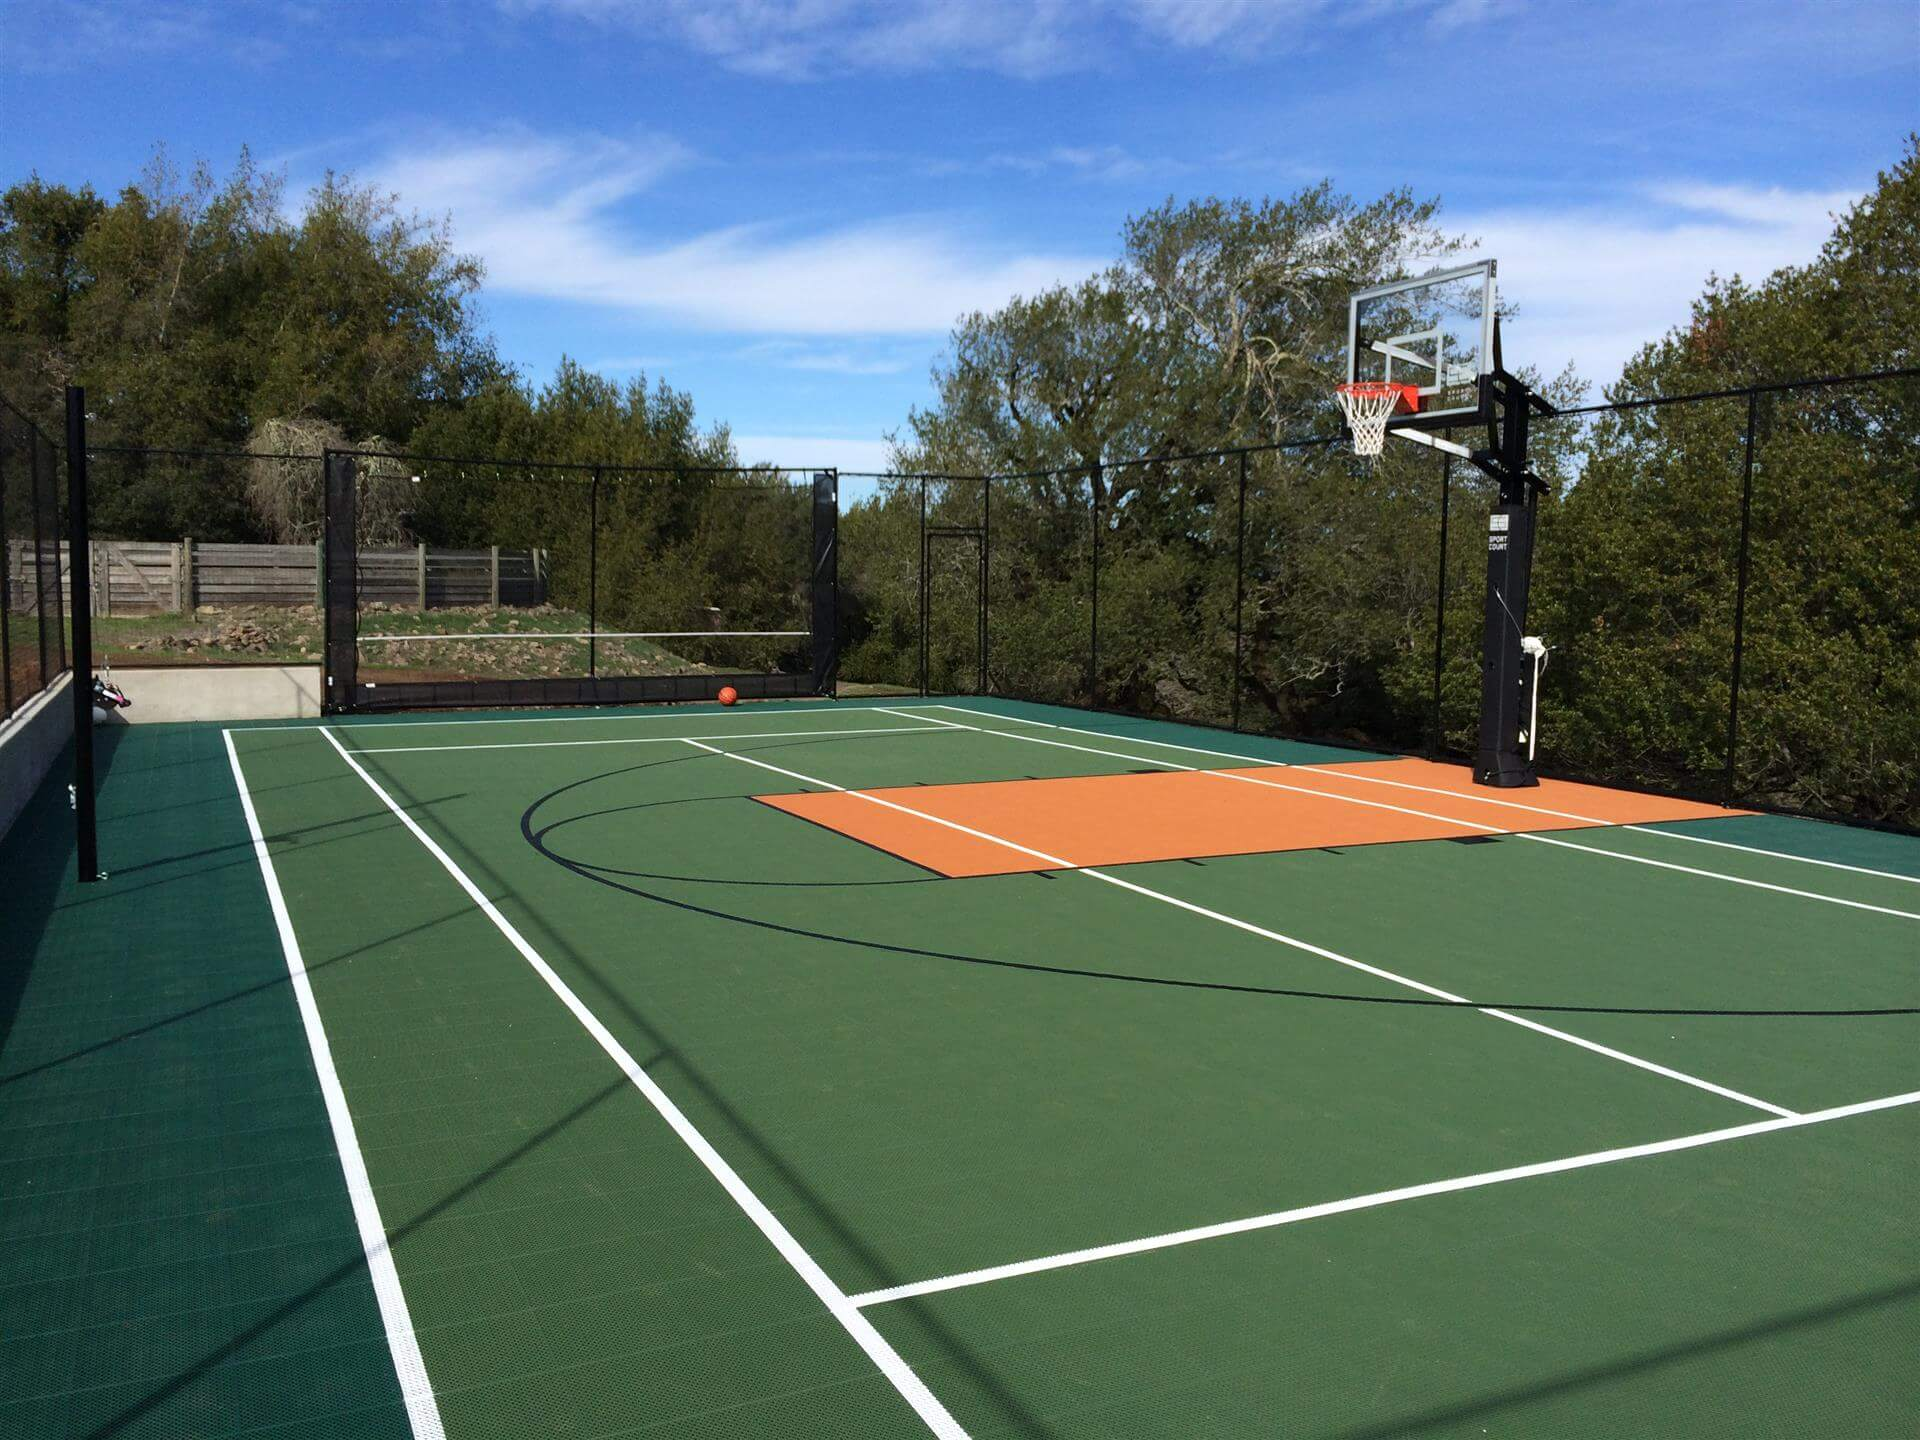 Backyard Sport Court Game Court Basketball, Tennis, Pickleball, Volleyball and Futsal Court. Landscape Design. AllSport America Court Builders